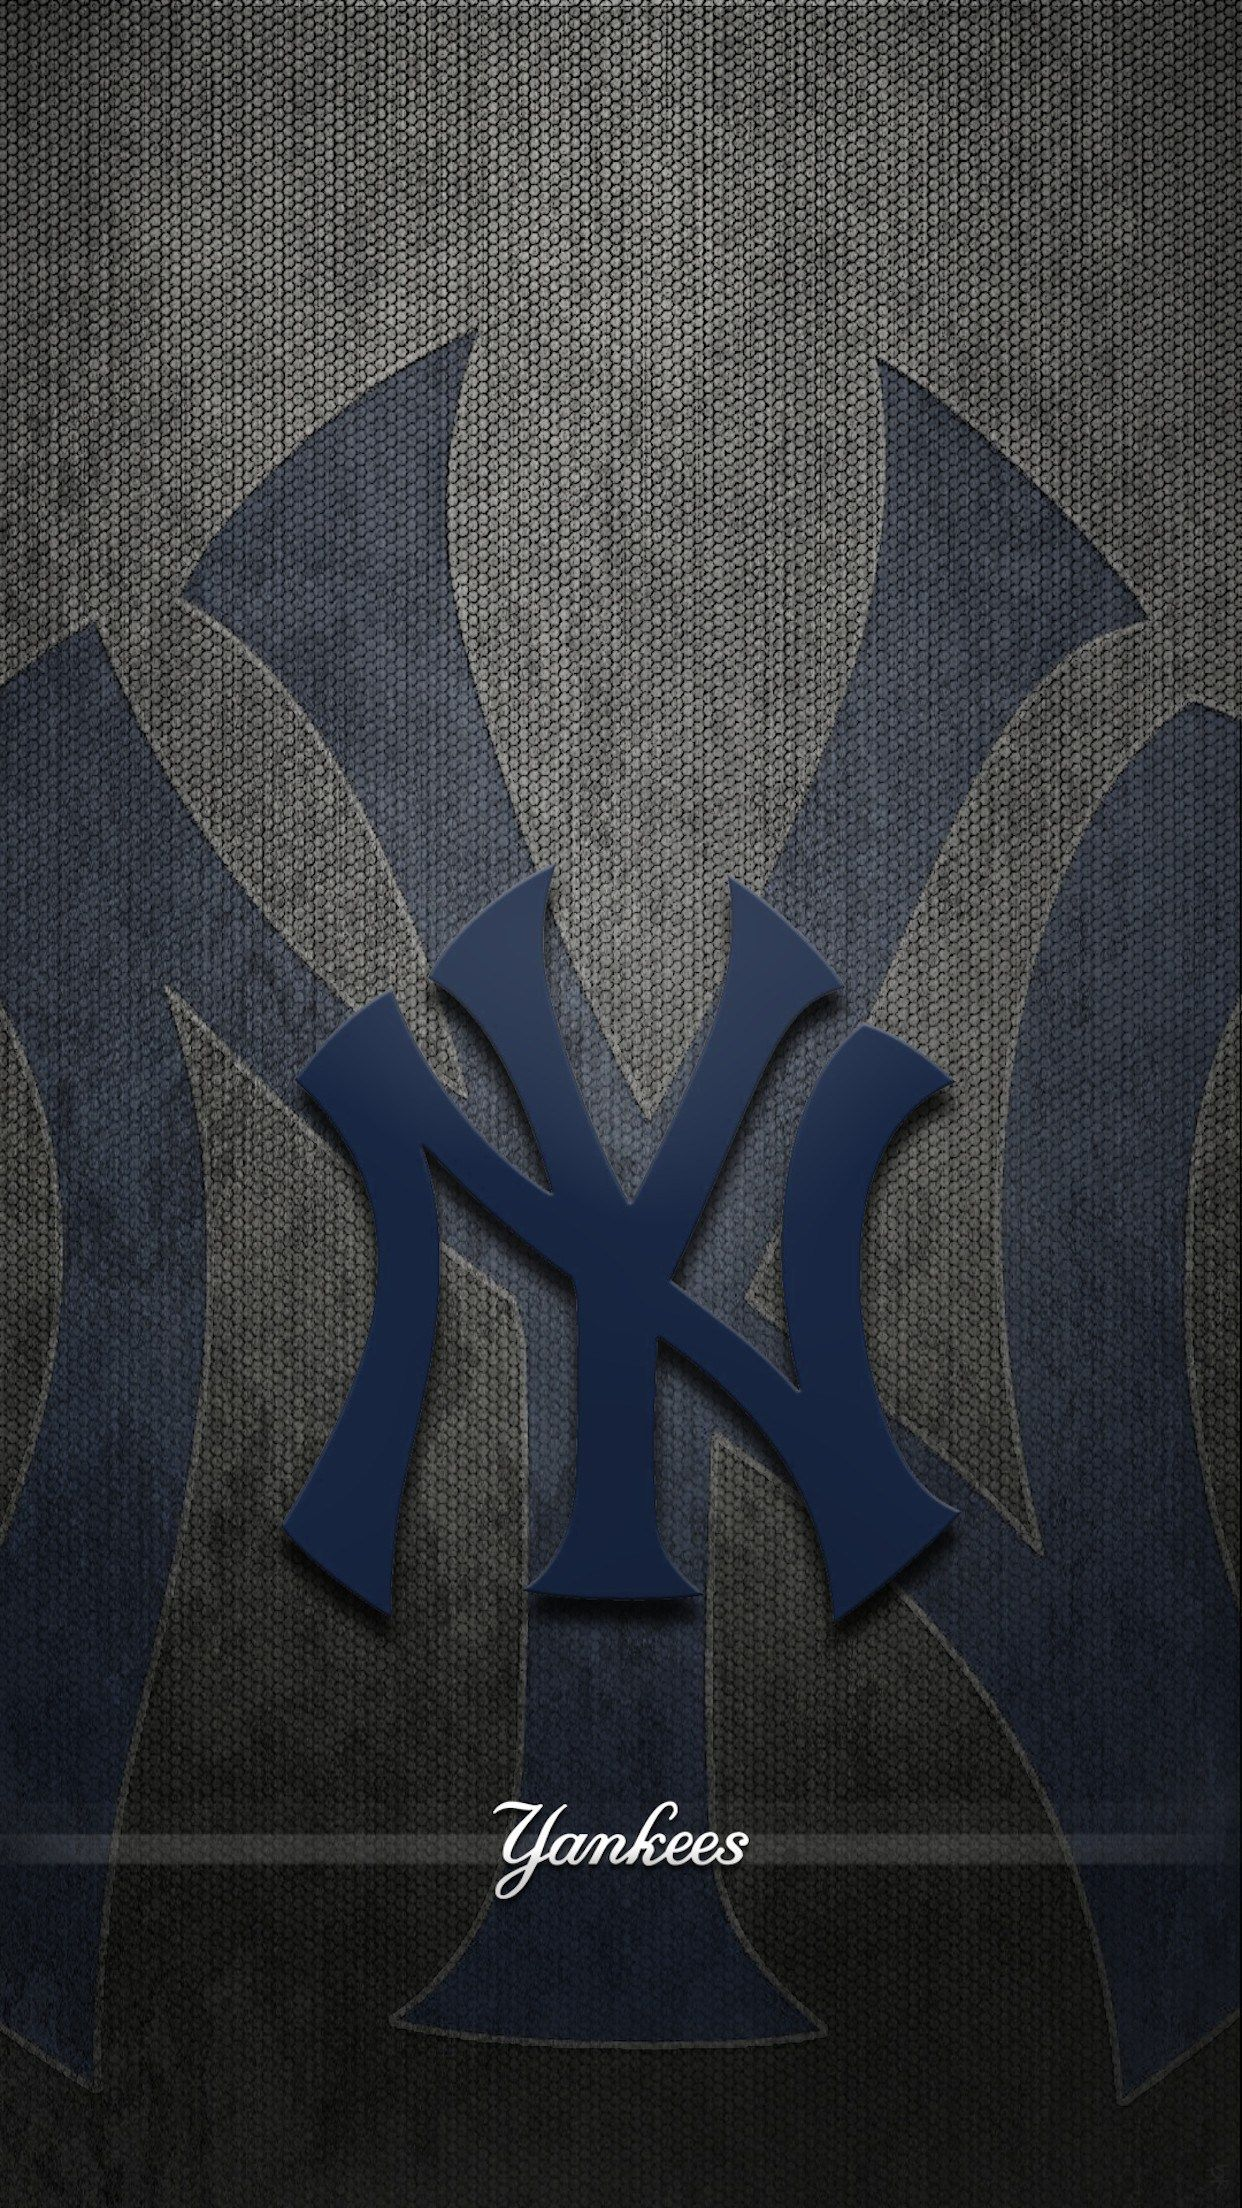 beautiful new york yankees wallpaper iphone